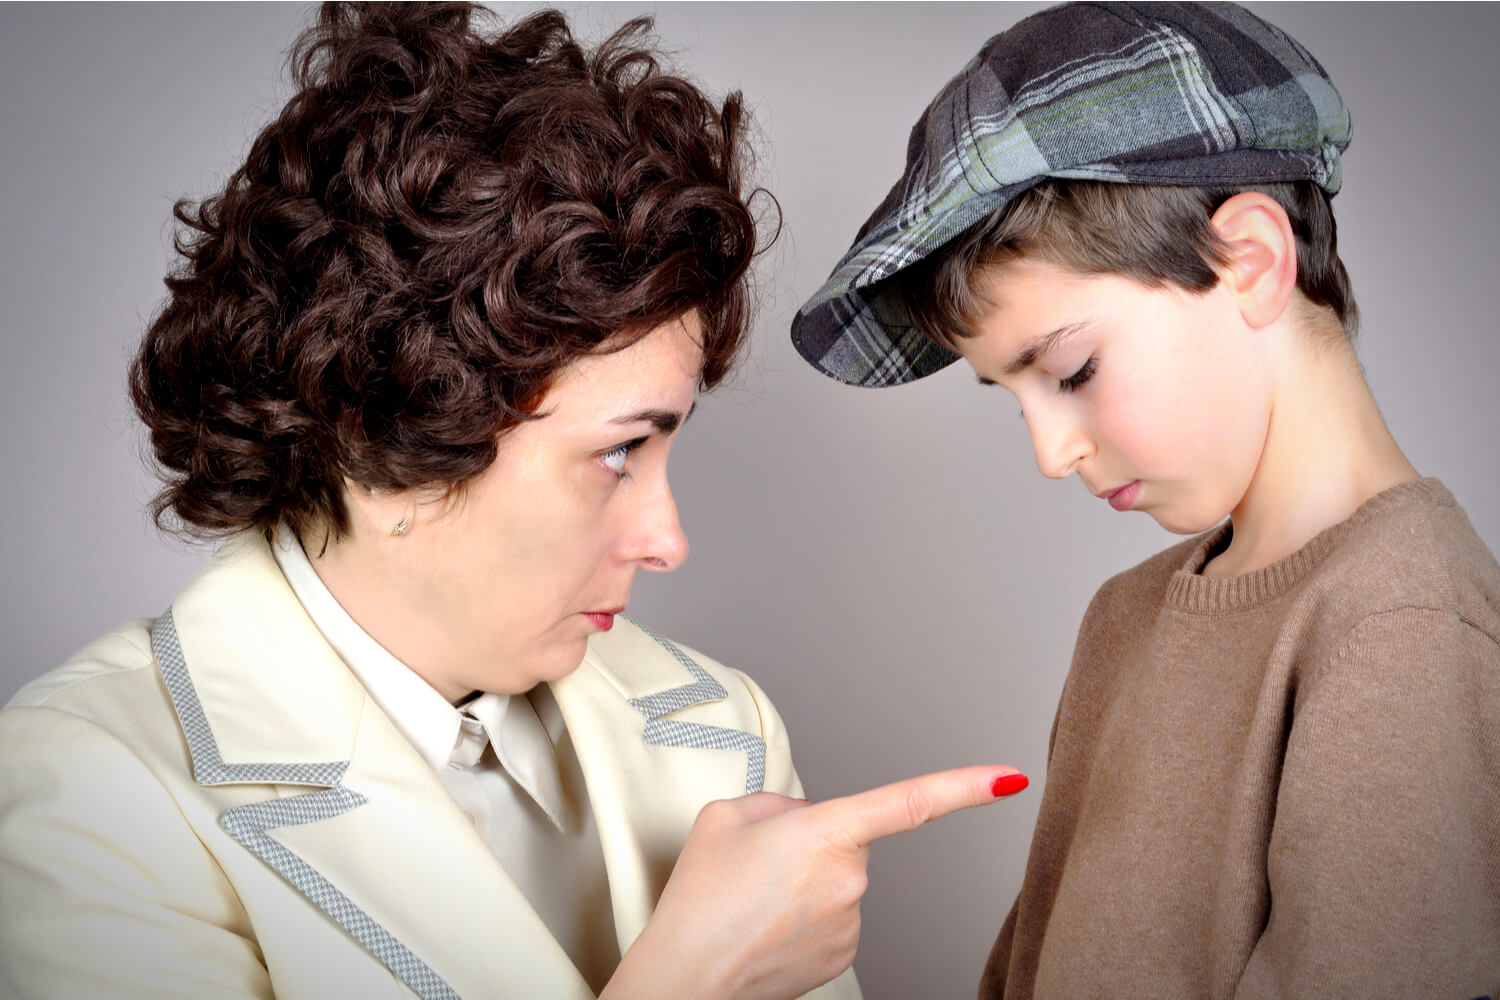 negative effects of comparing child with others